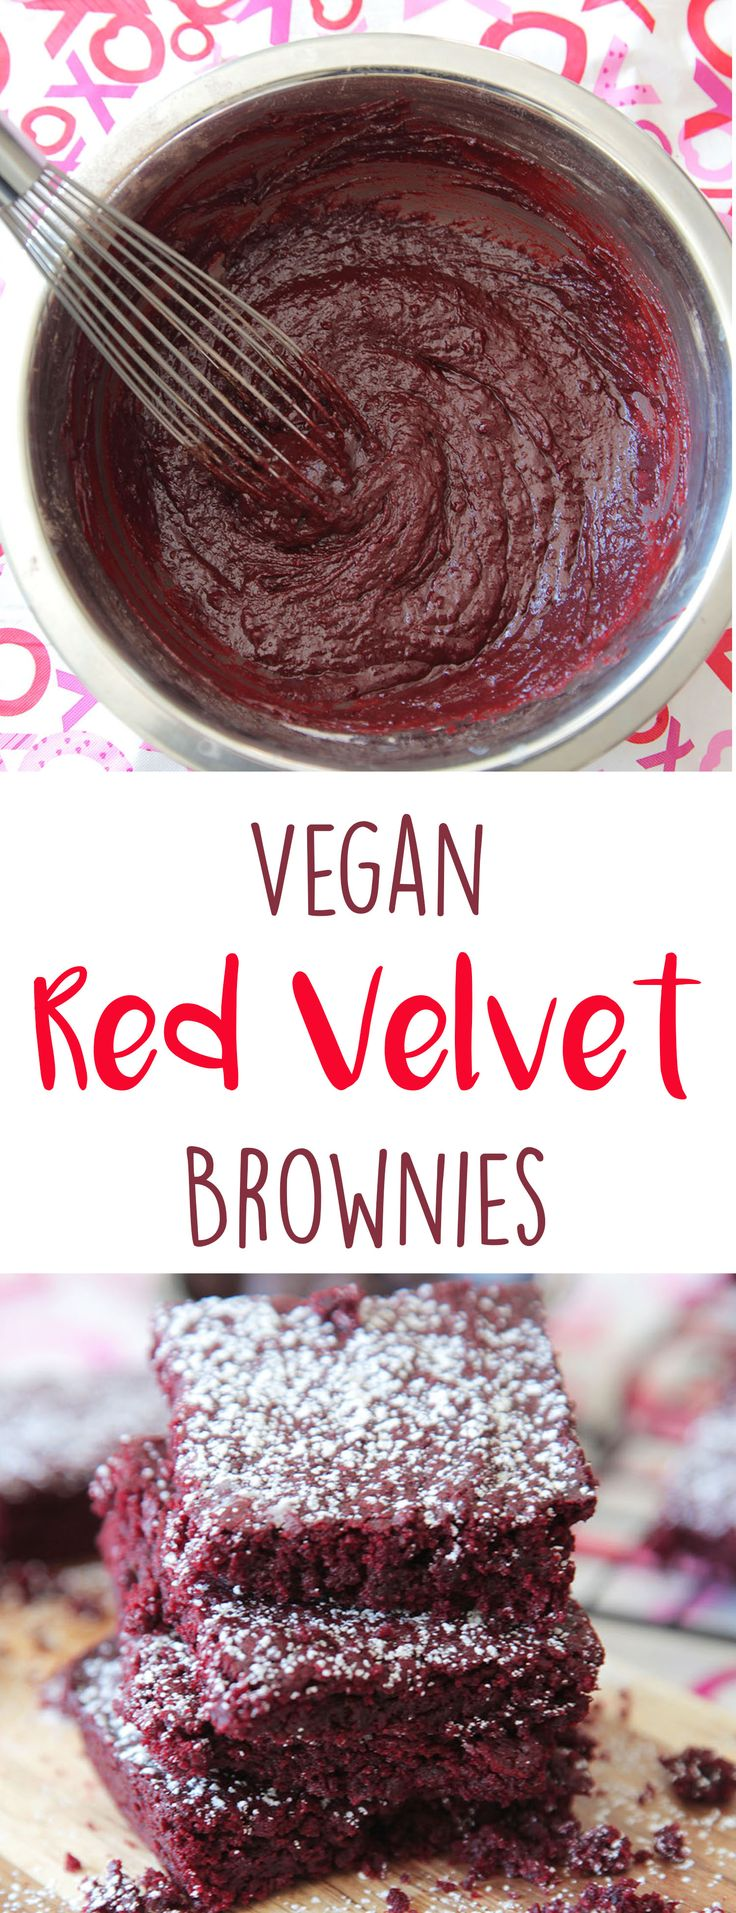 Red Velvet Brownies (Vegan) - These decadent and delicious treats combine classic brownies with red velvet for a festive treat that you would never know are actually vegan!